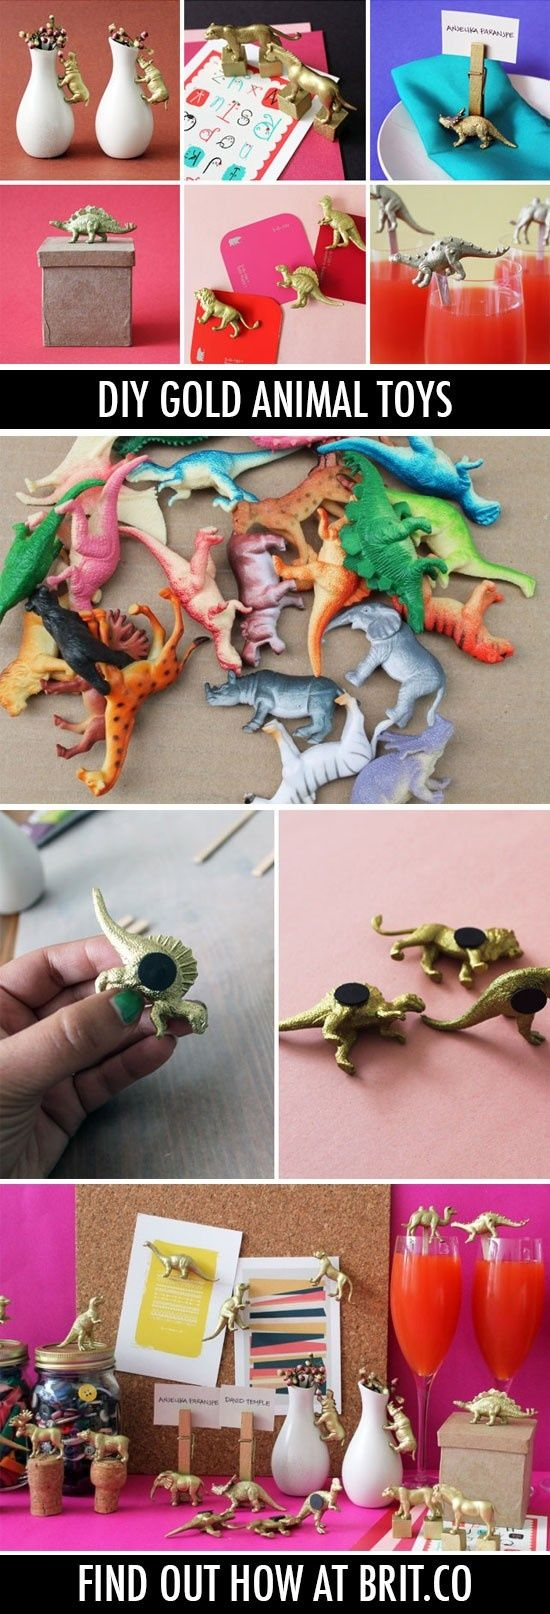 9 Things You Can Make with Gold Animal Toys | DIY